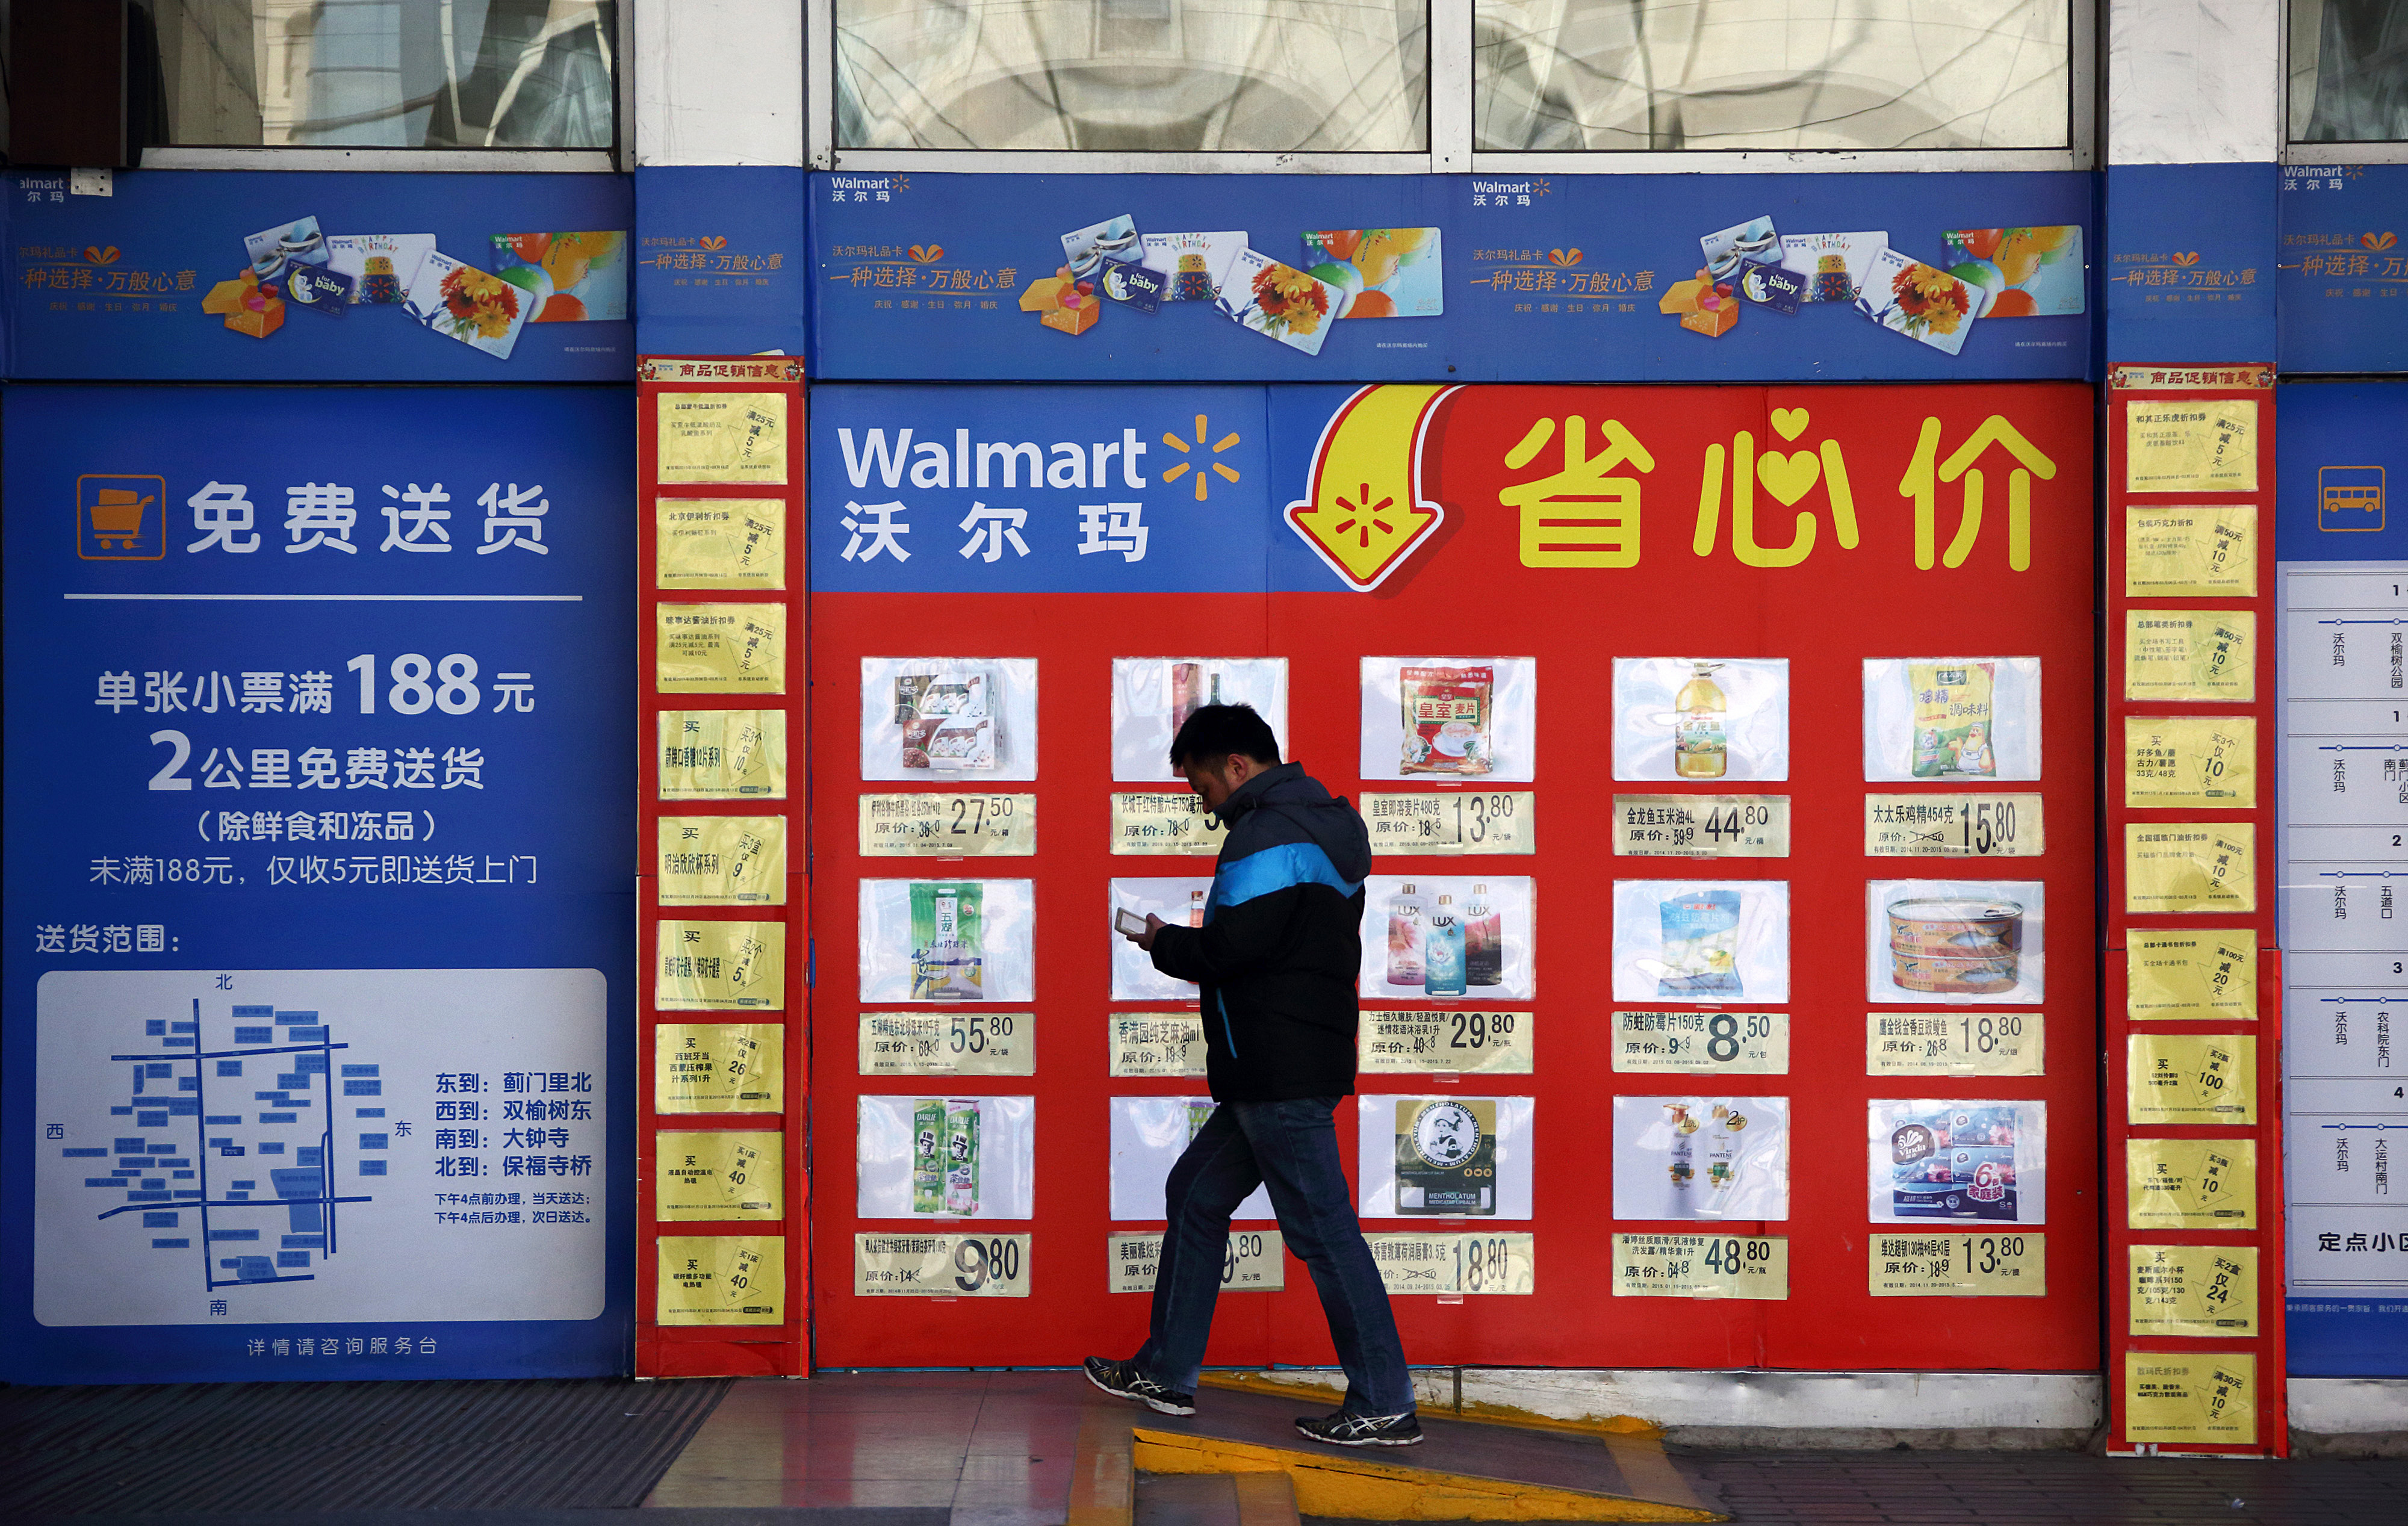 Images of Walmart Stores in Beijing